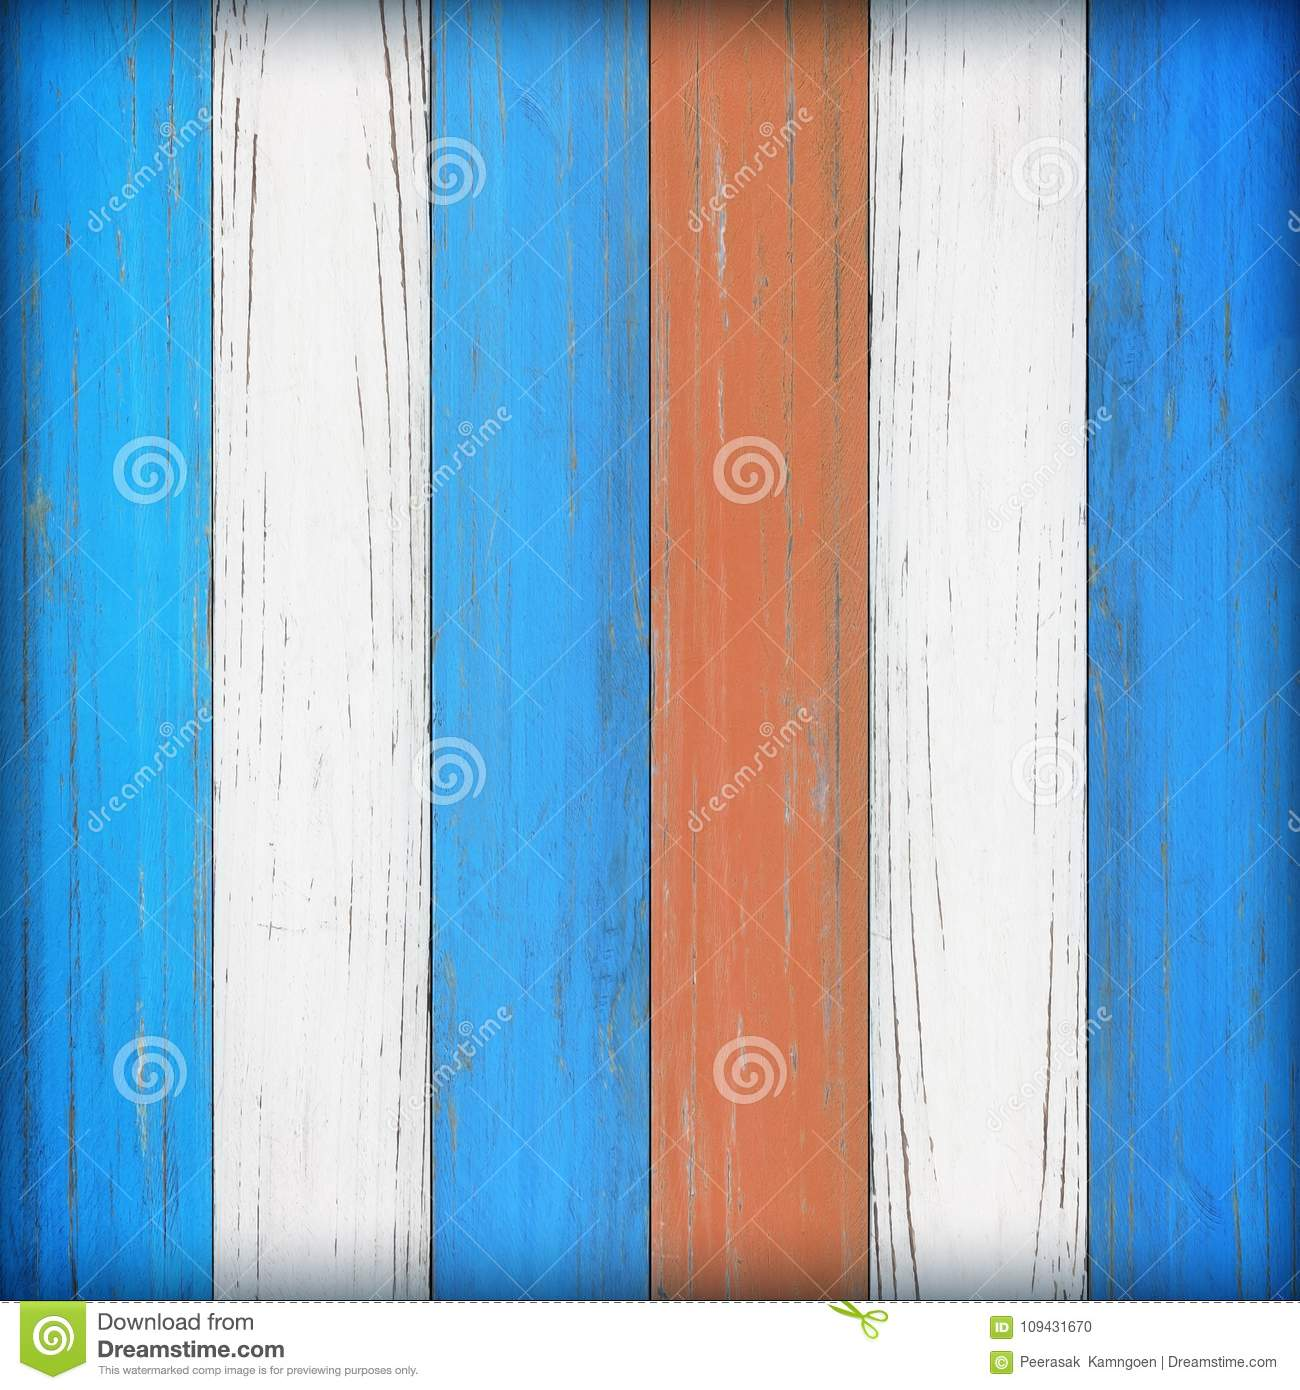 Old wooden wall background or texture; Vintage wood background